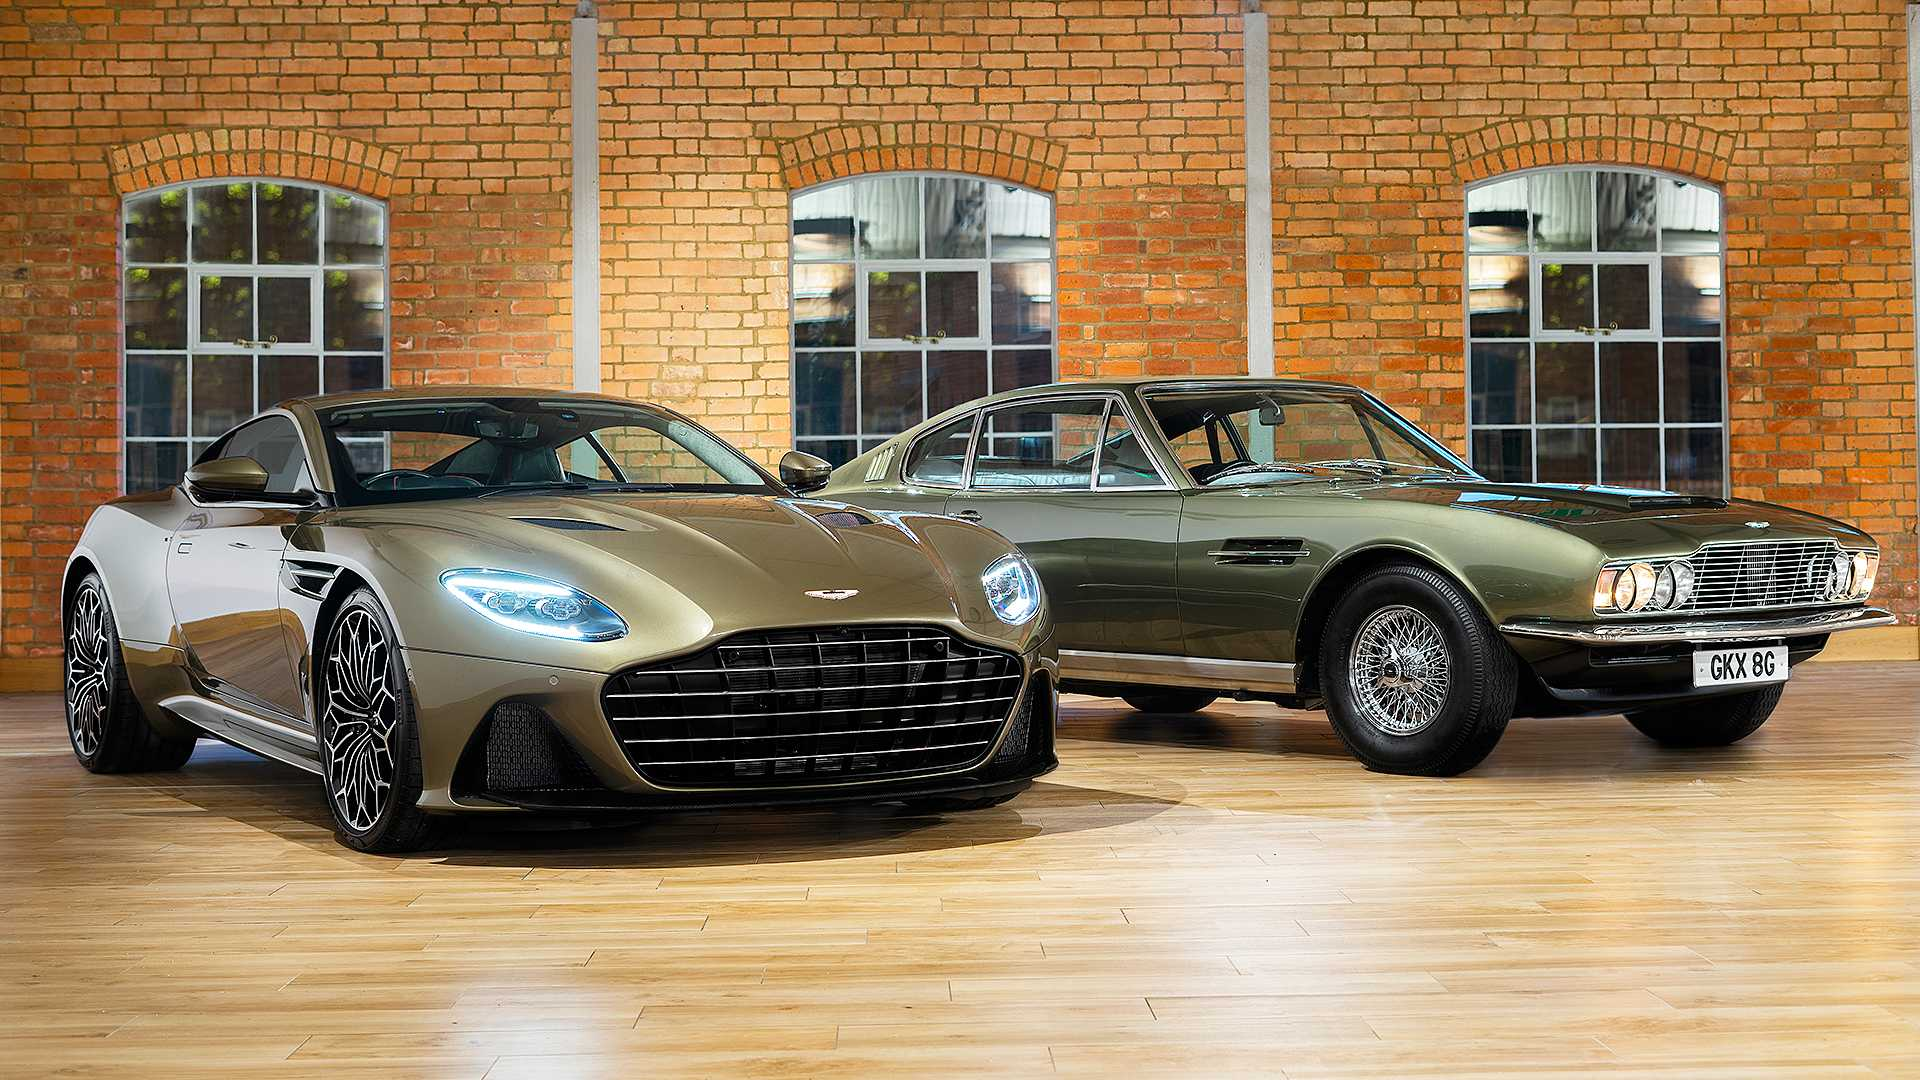 China's Geely in talks to take stake in Aston Martin: FT